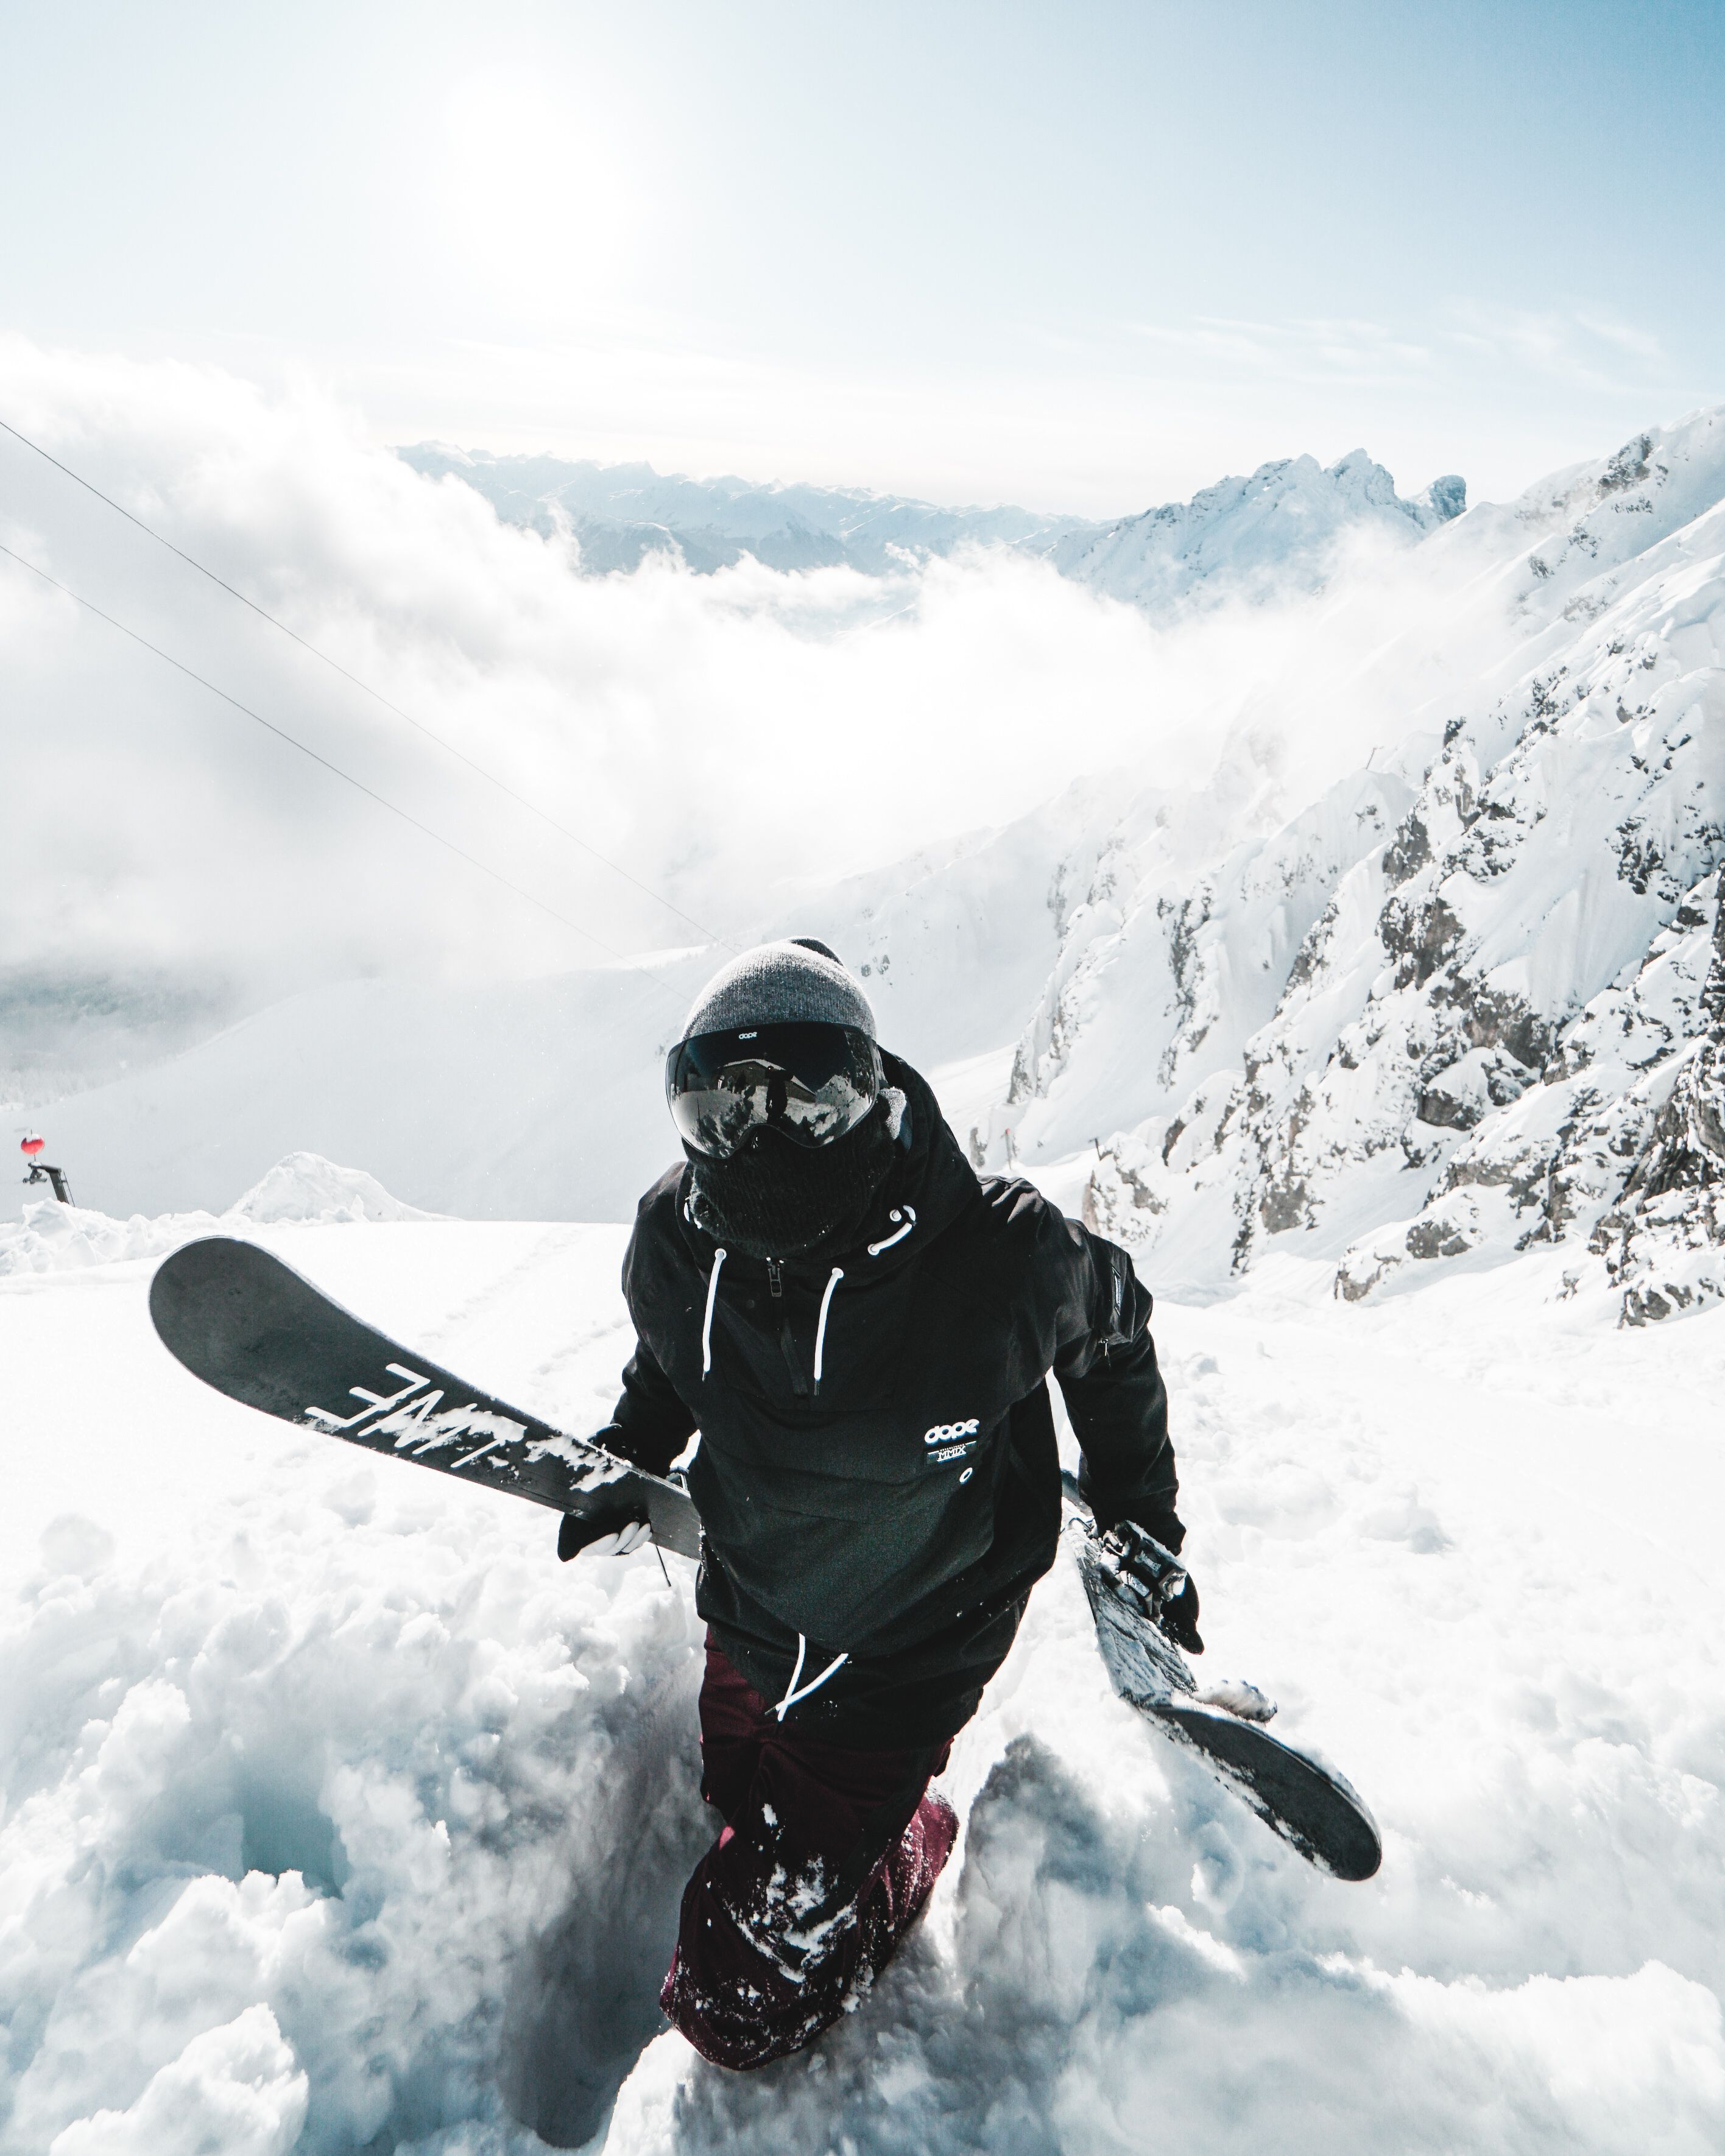 ski outfit men in 2020 Snowboard, Skiing, Skiing outfit